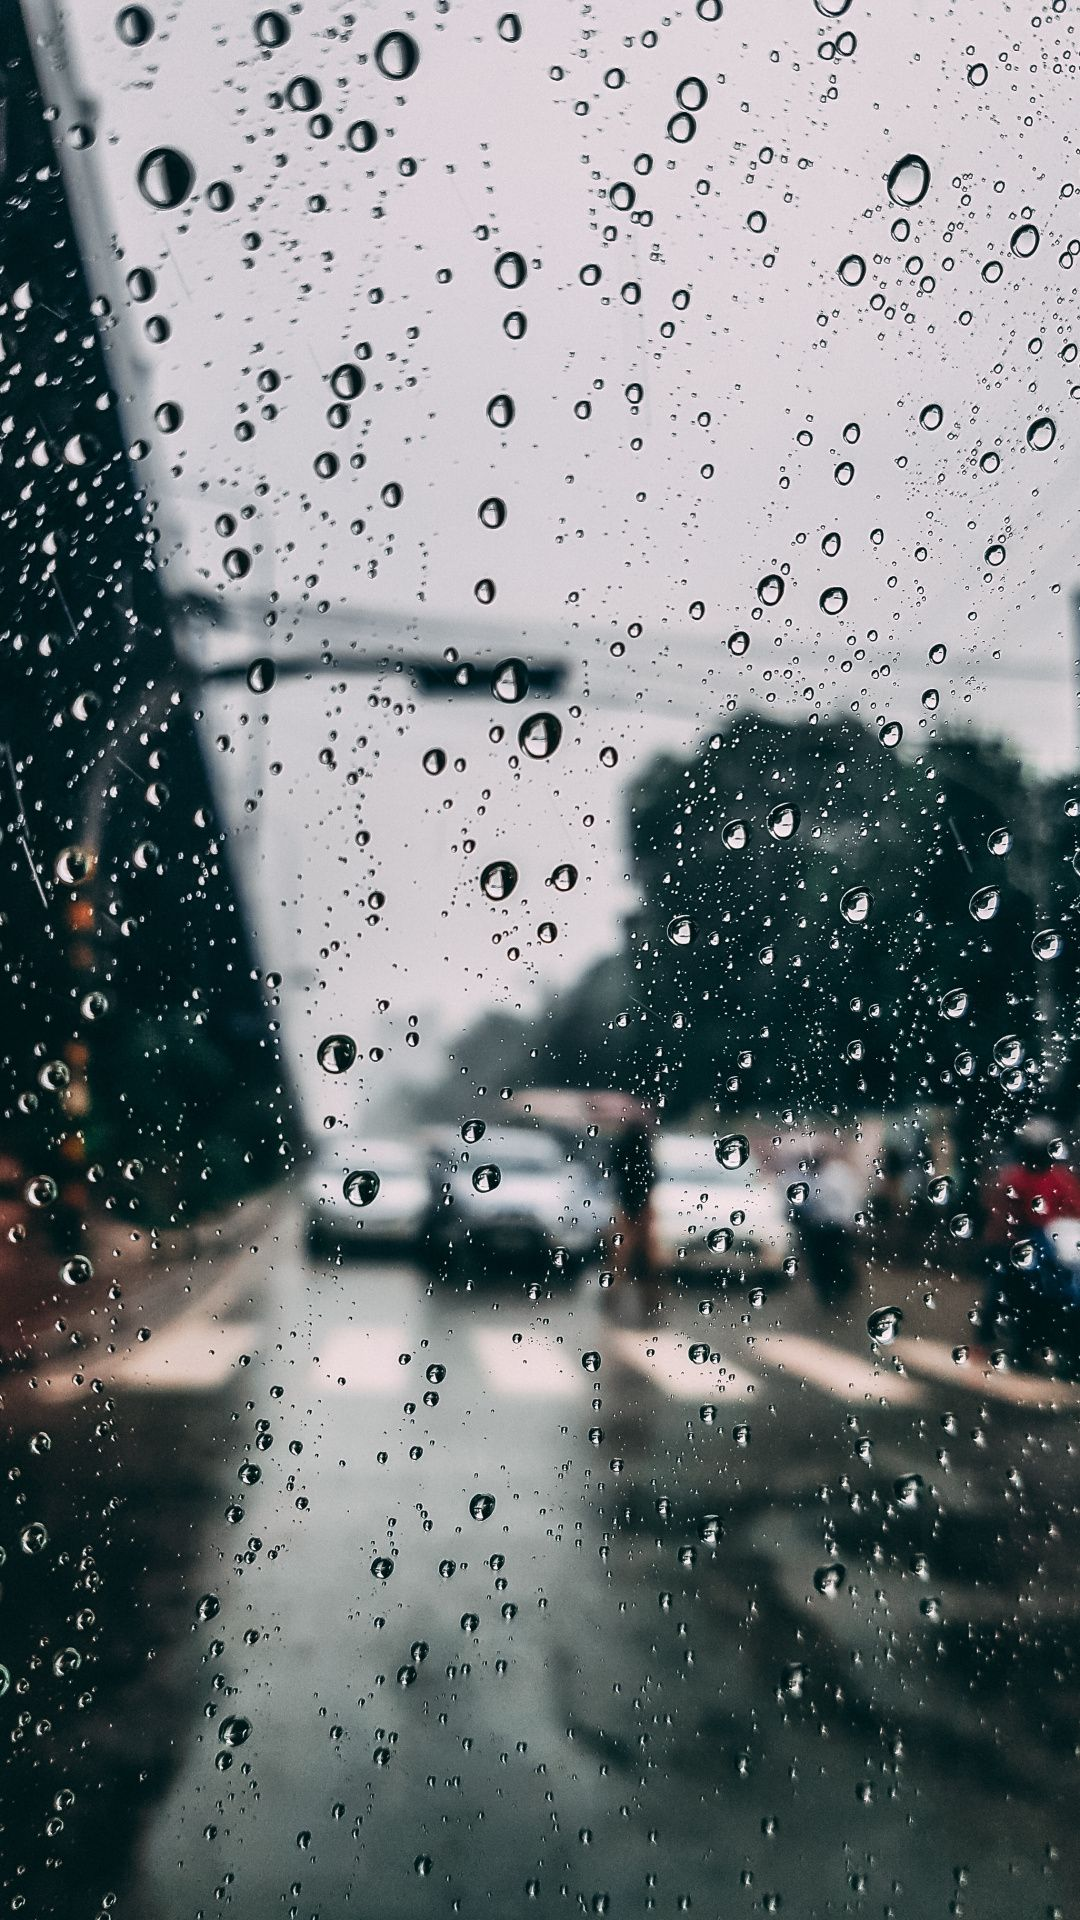 Wallpapers Drizzle Precipitation Tree Drop Window Rain Wallpapers Colorful Wallpaper Android Wallpaper